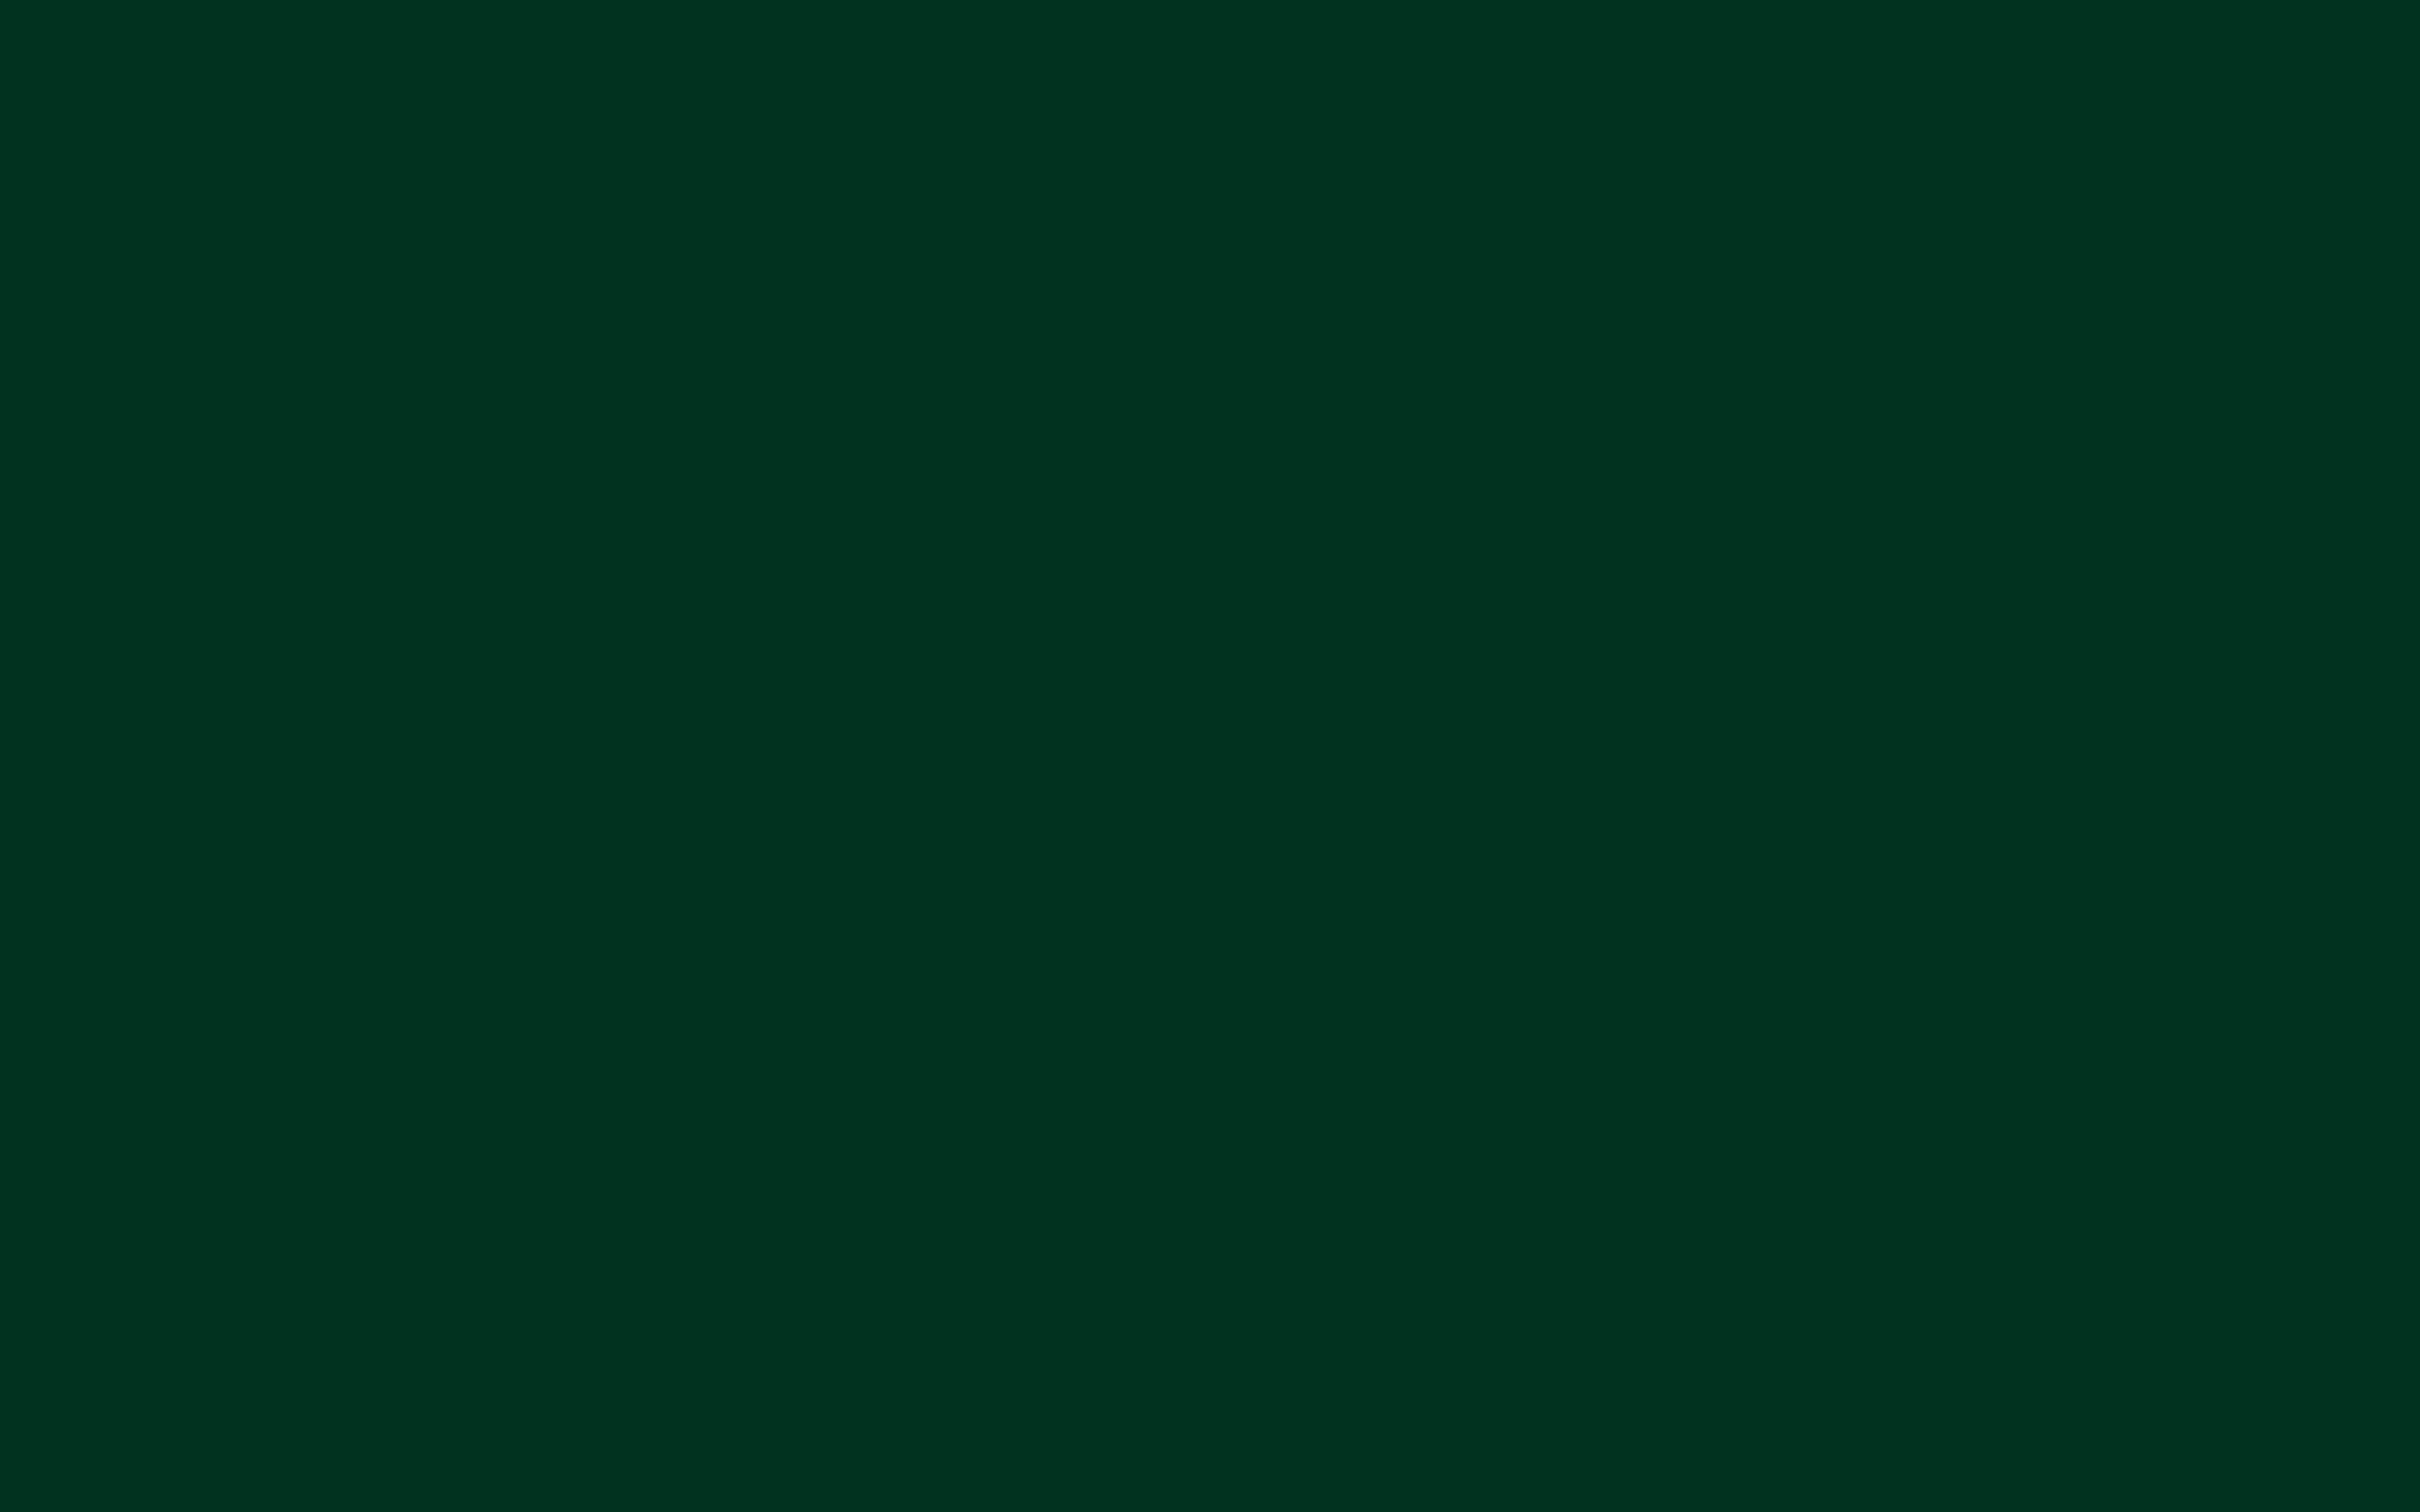 Res: 2880x1800, WHAT is moon green color? | background color solid green dark images